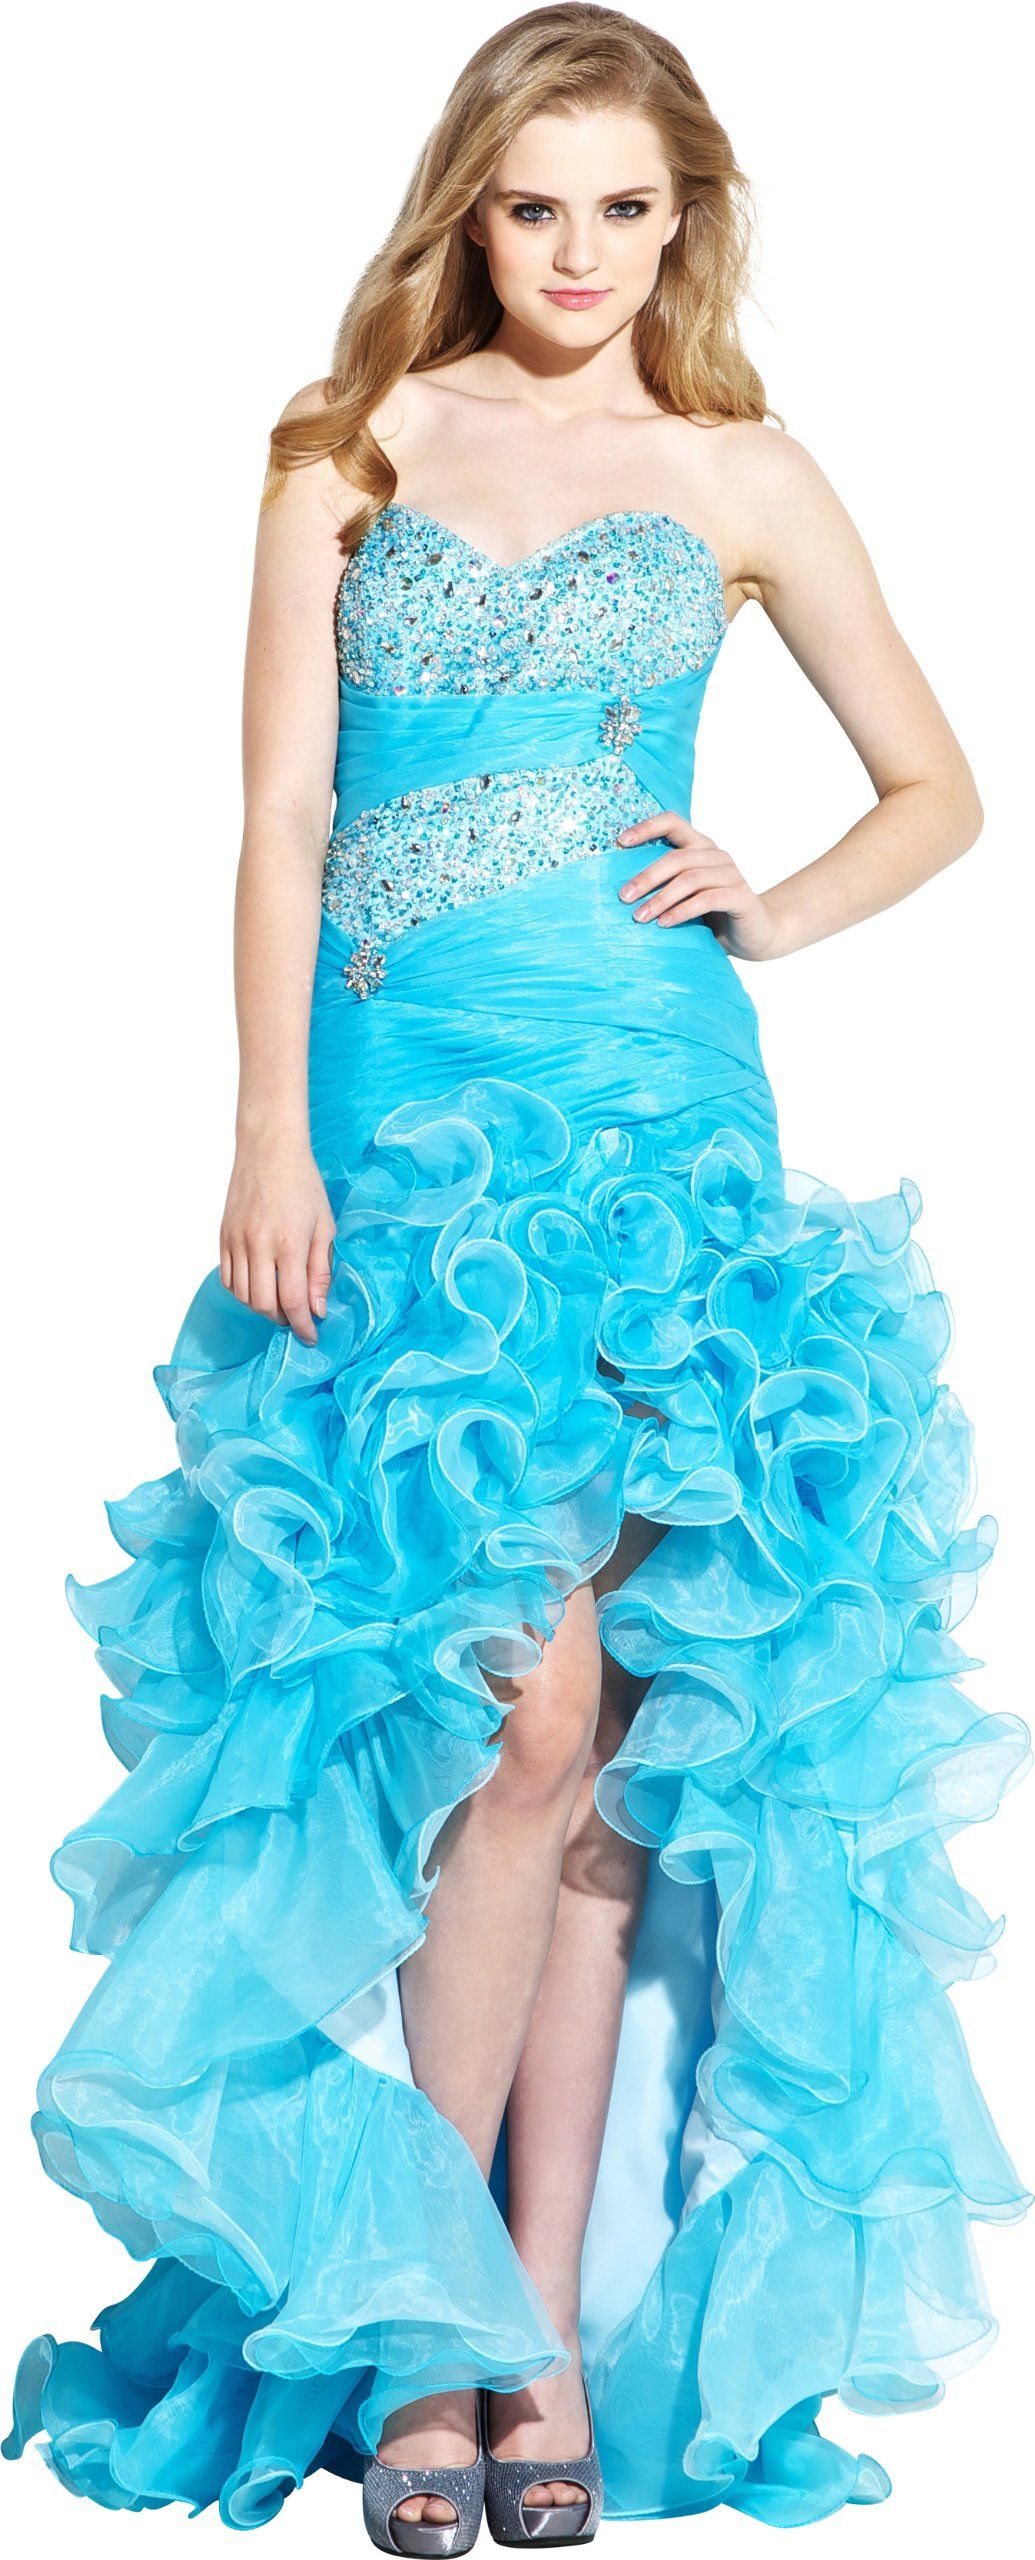 Turquoise low high prom dresses forecast to wear for autumn in 2019